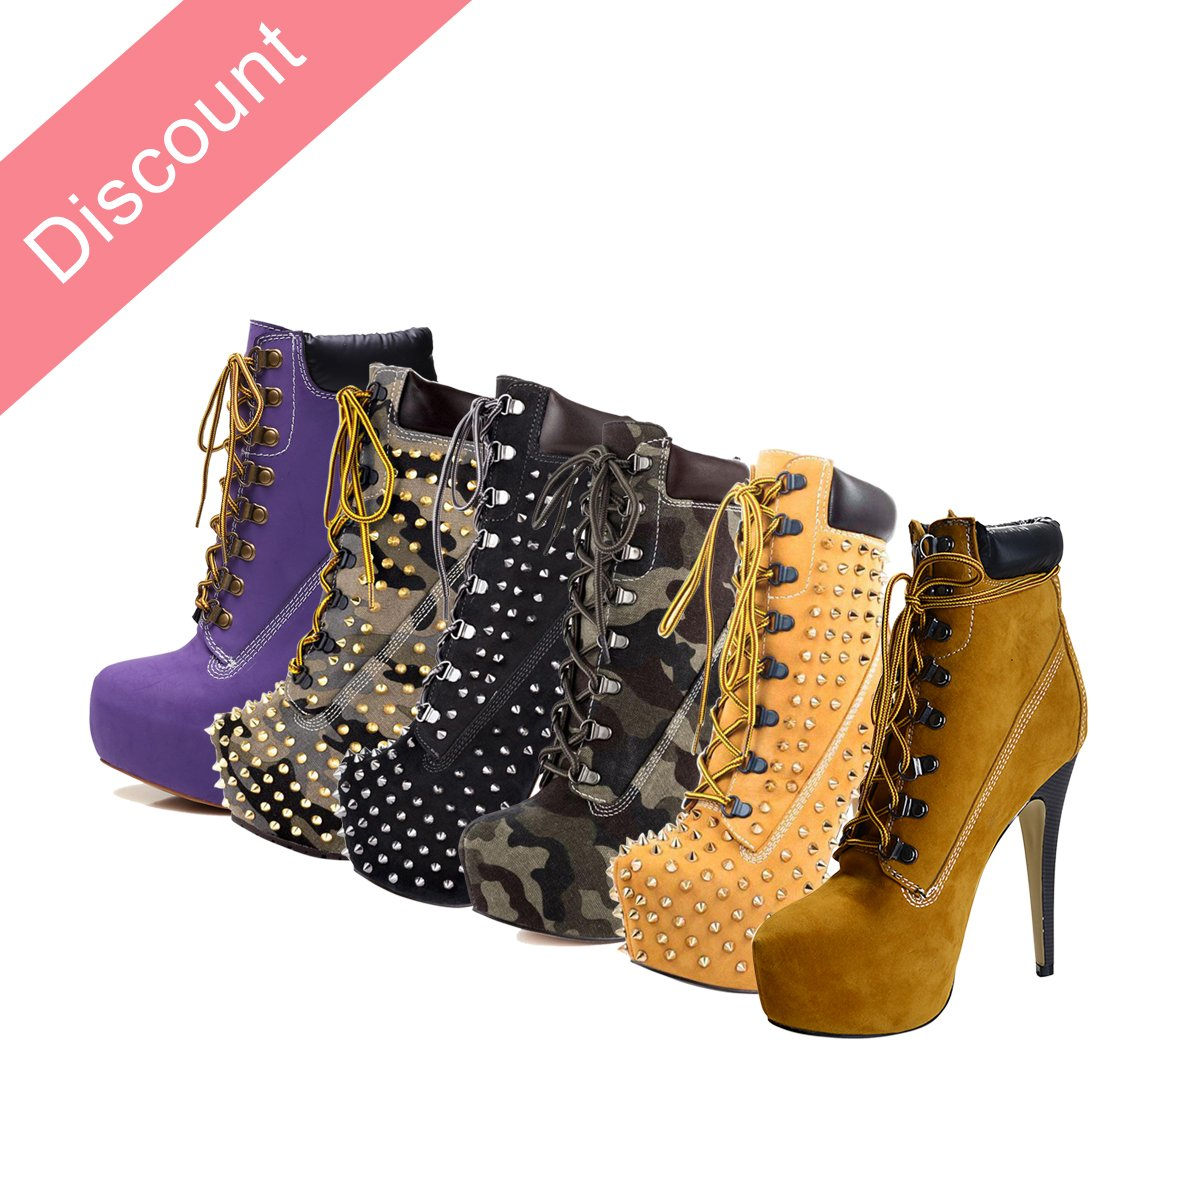 onlymaker Women's Rivet Studded Platform High Heel Pointed Toe Lace up Ankle Boots B013FLUH5I 11 B(M) US|Apricot